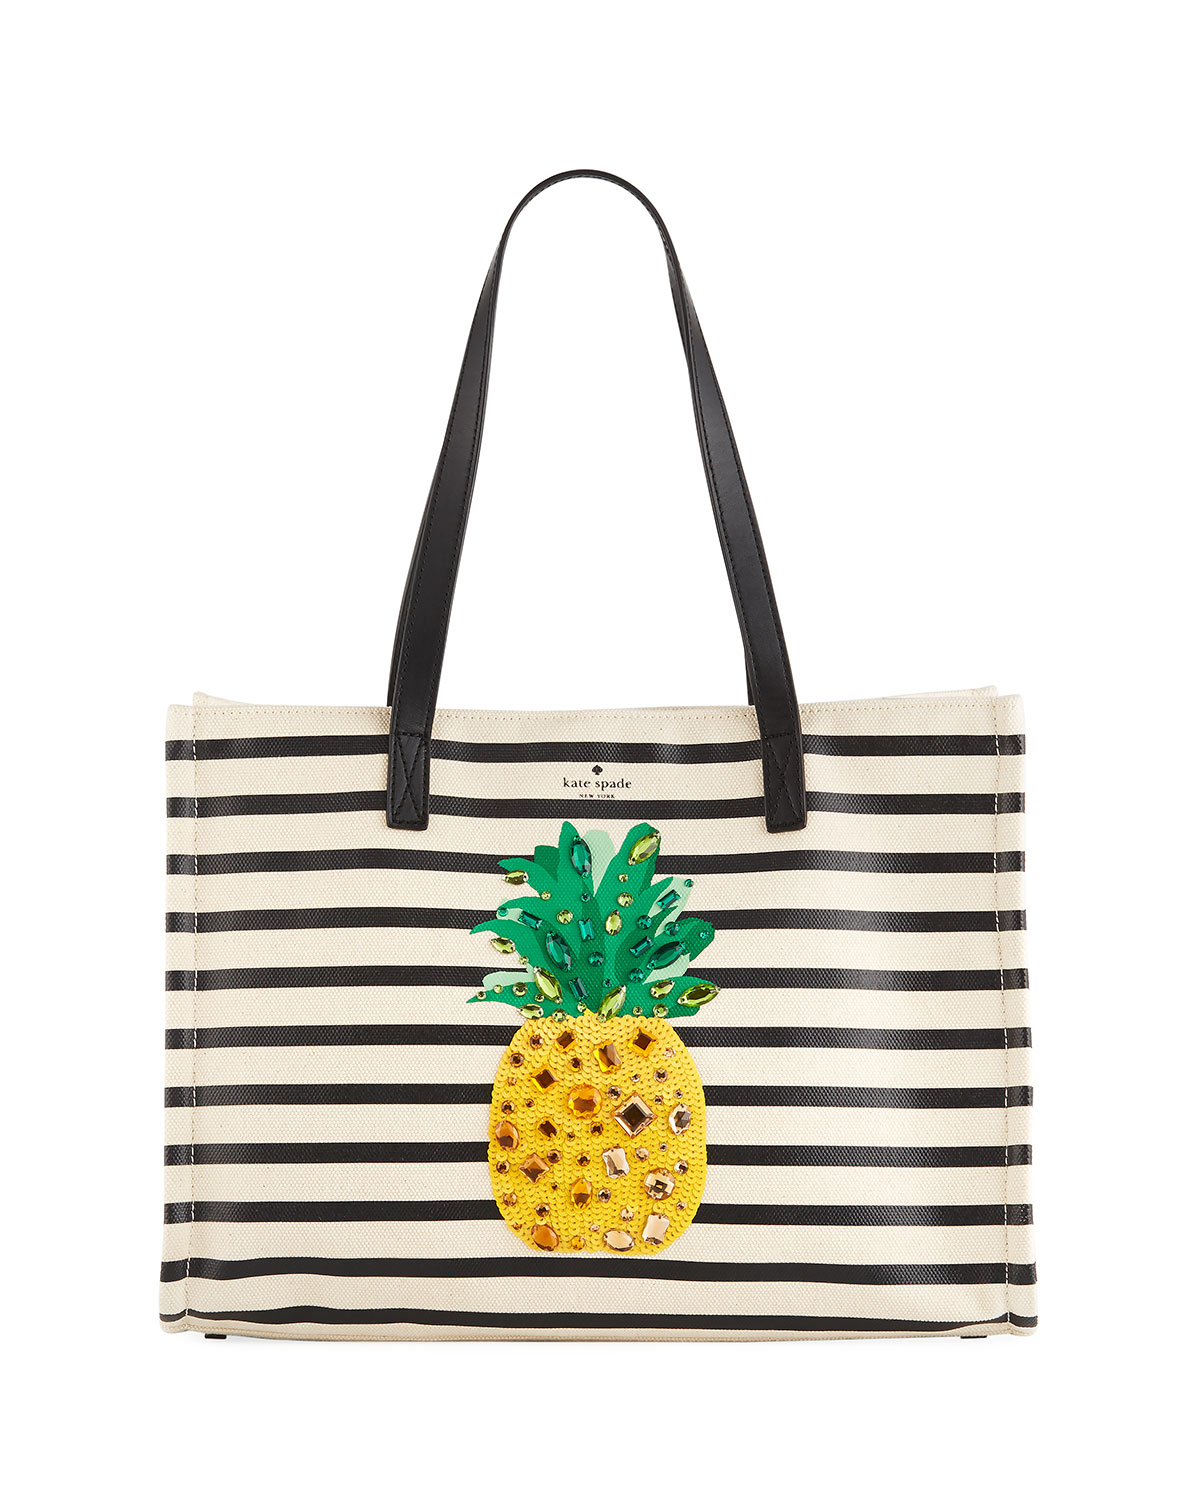 540c977a7 kate spade new york by the pool canvas pineapple tote bag | Neiman ...